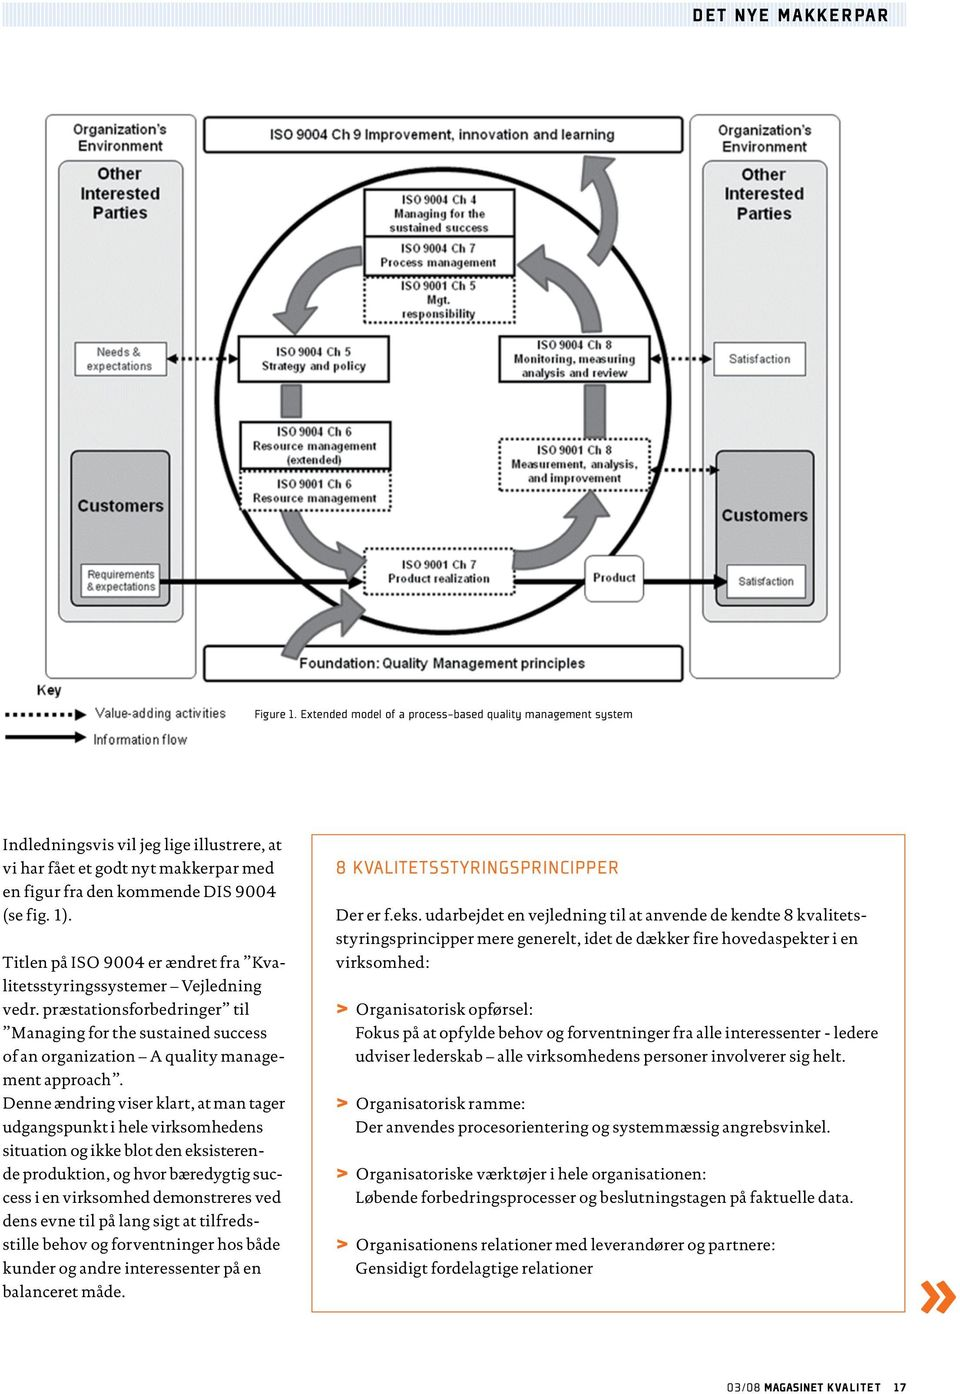 præstationsforbedringer til Managing for the sustained success of an organization A quality Indledningsvis management vil approach.